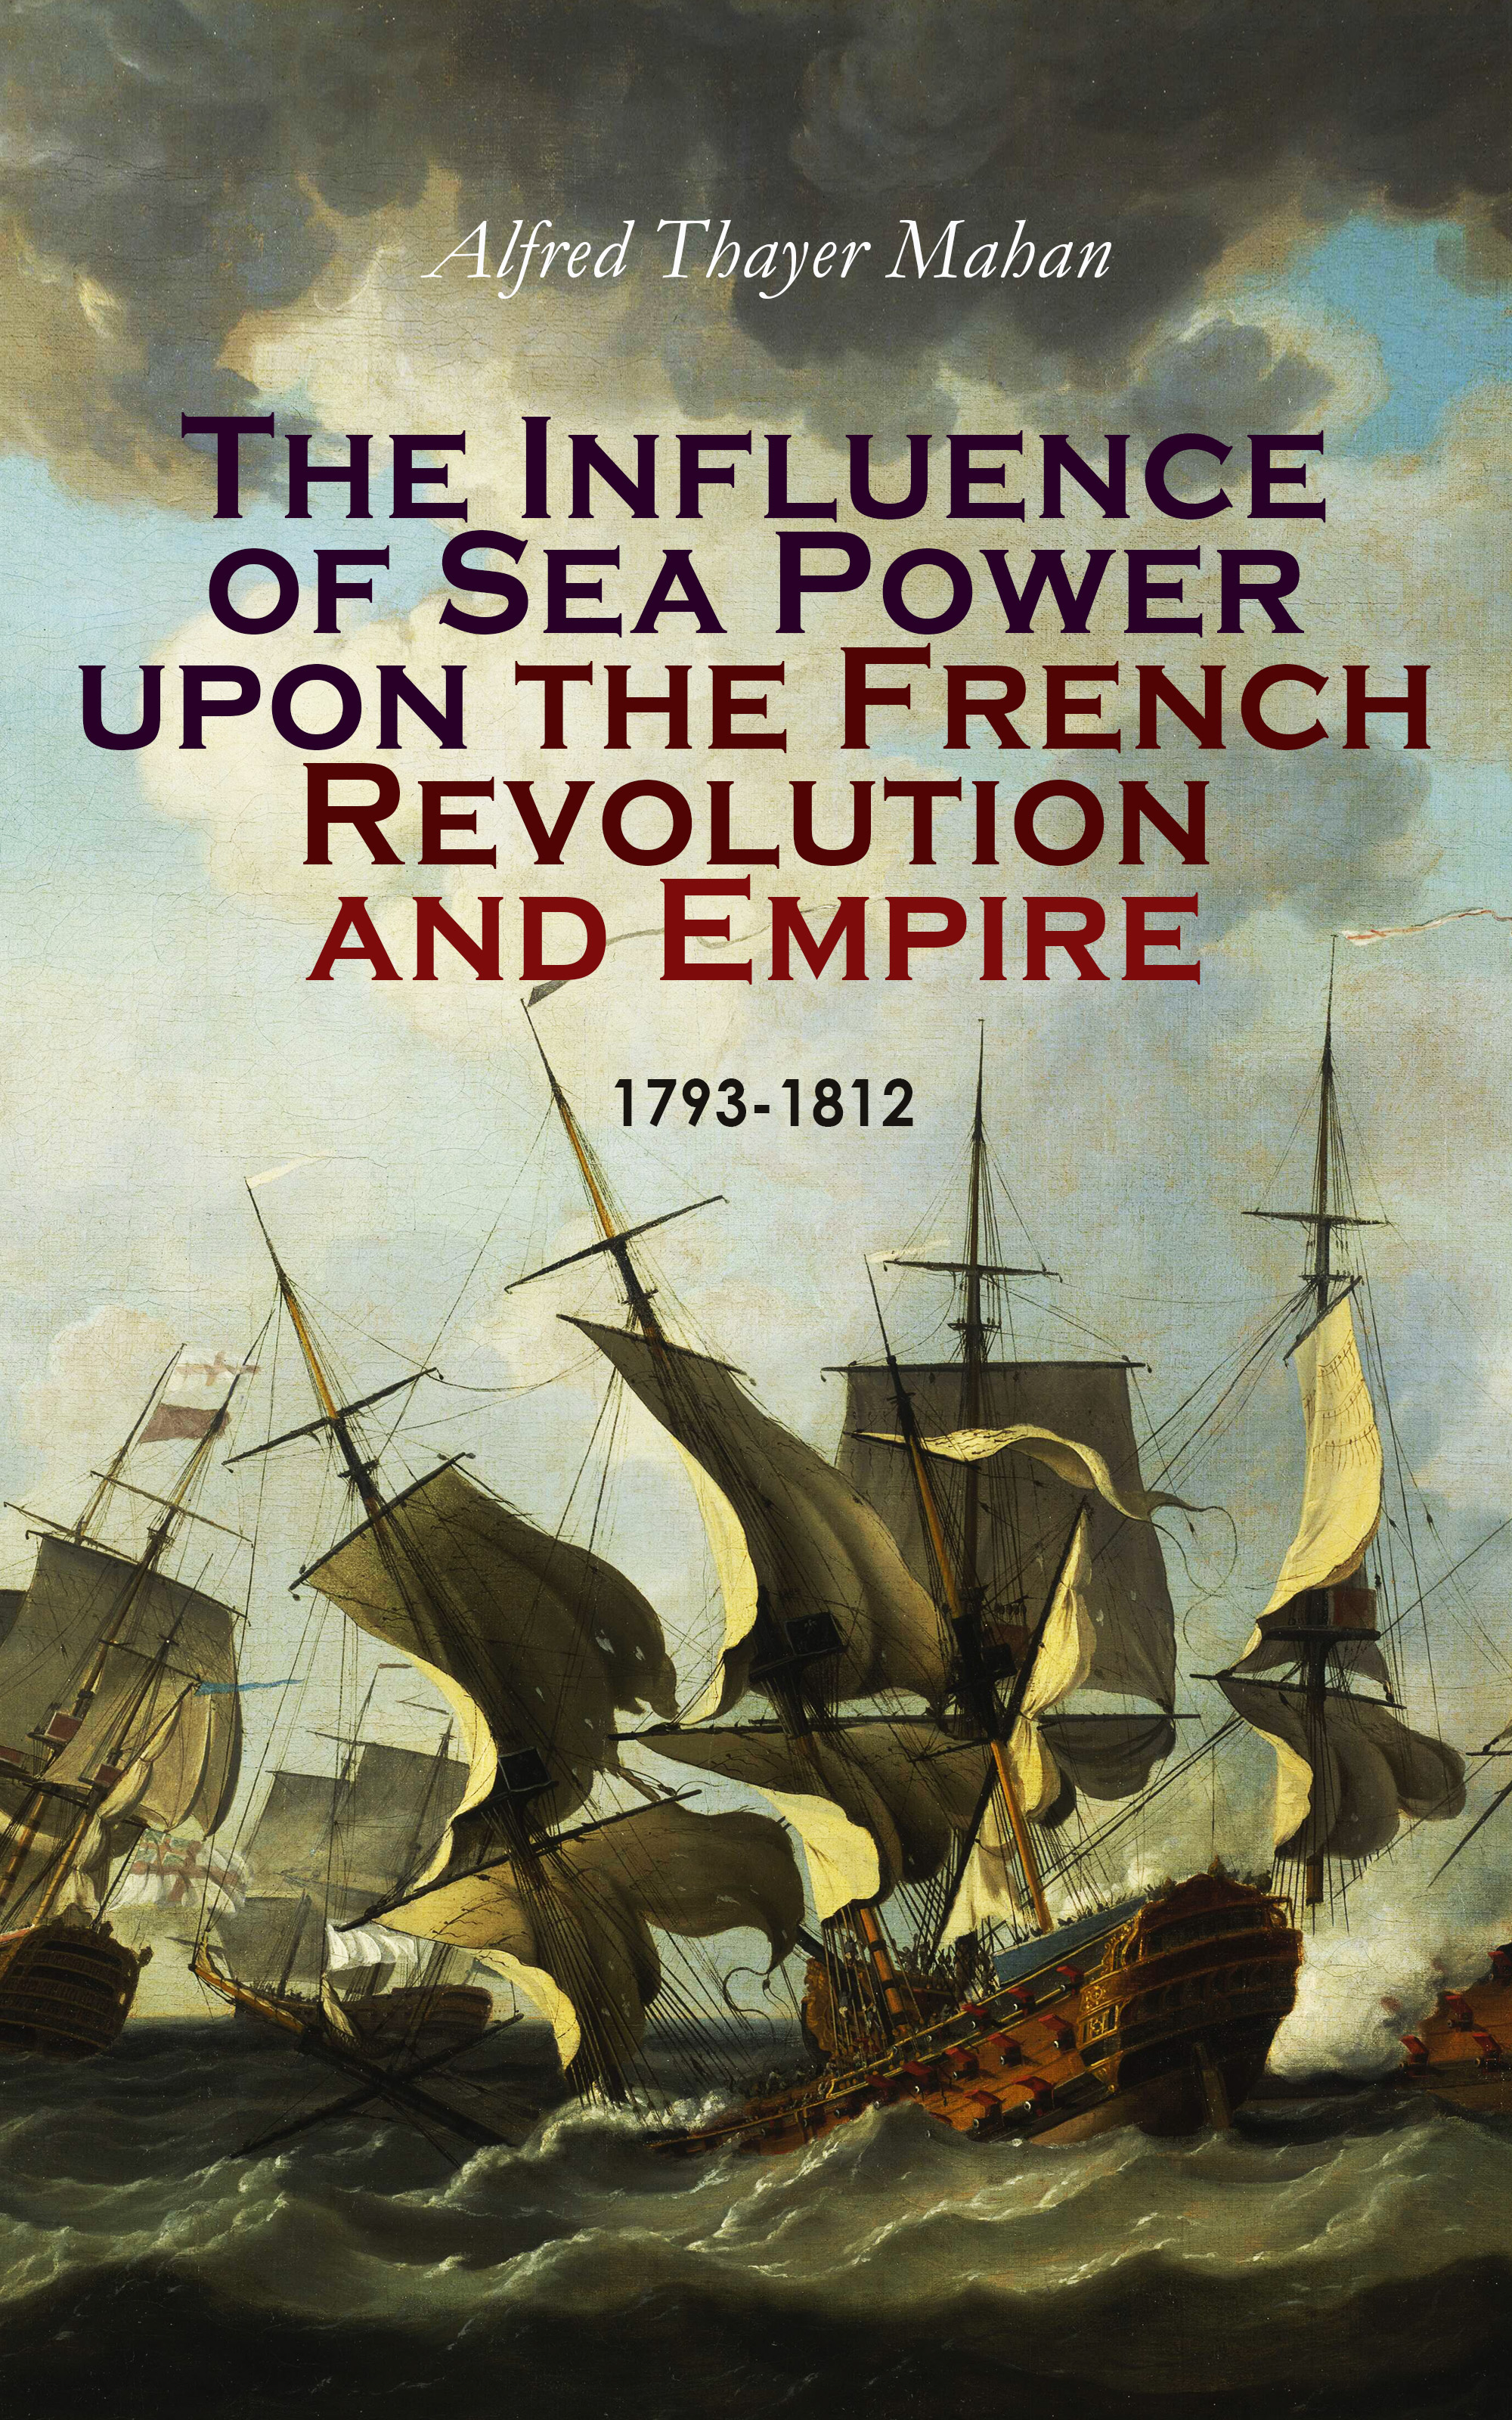 цена на Alfred Thayer Mahan The Influence of Sea Power upon the French Revolution and Empire: 1793-1812